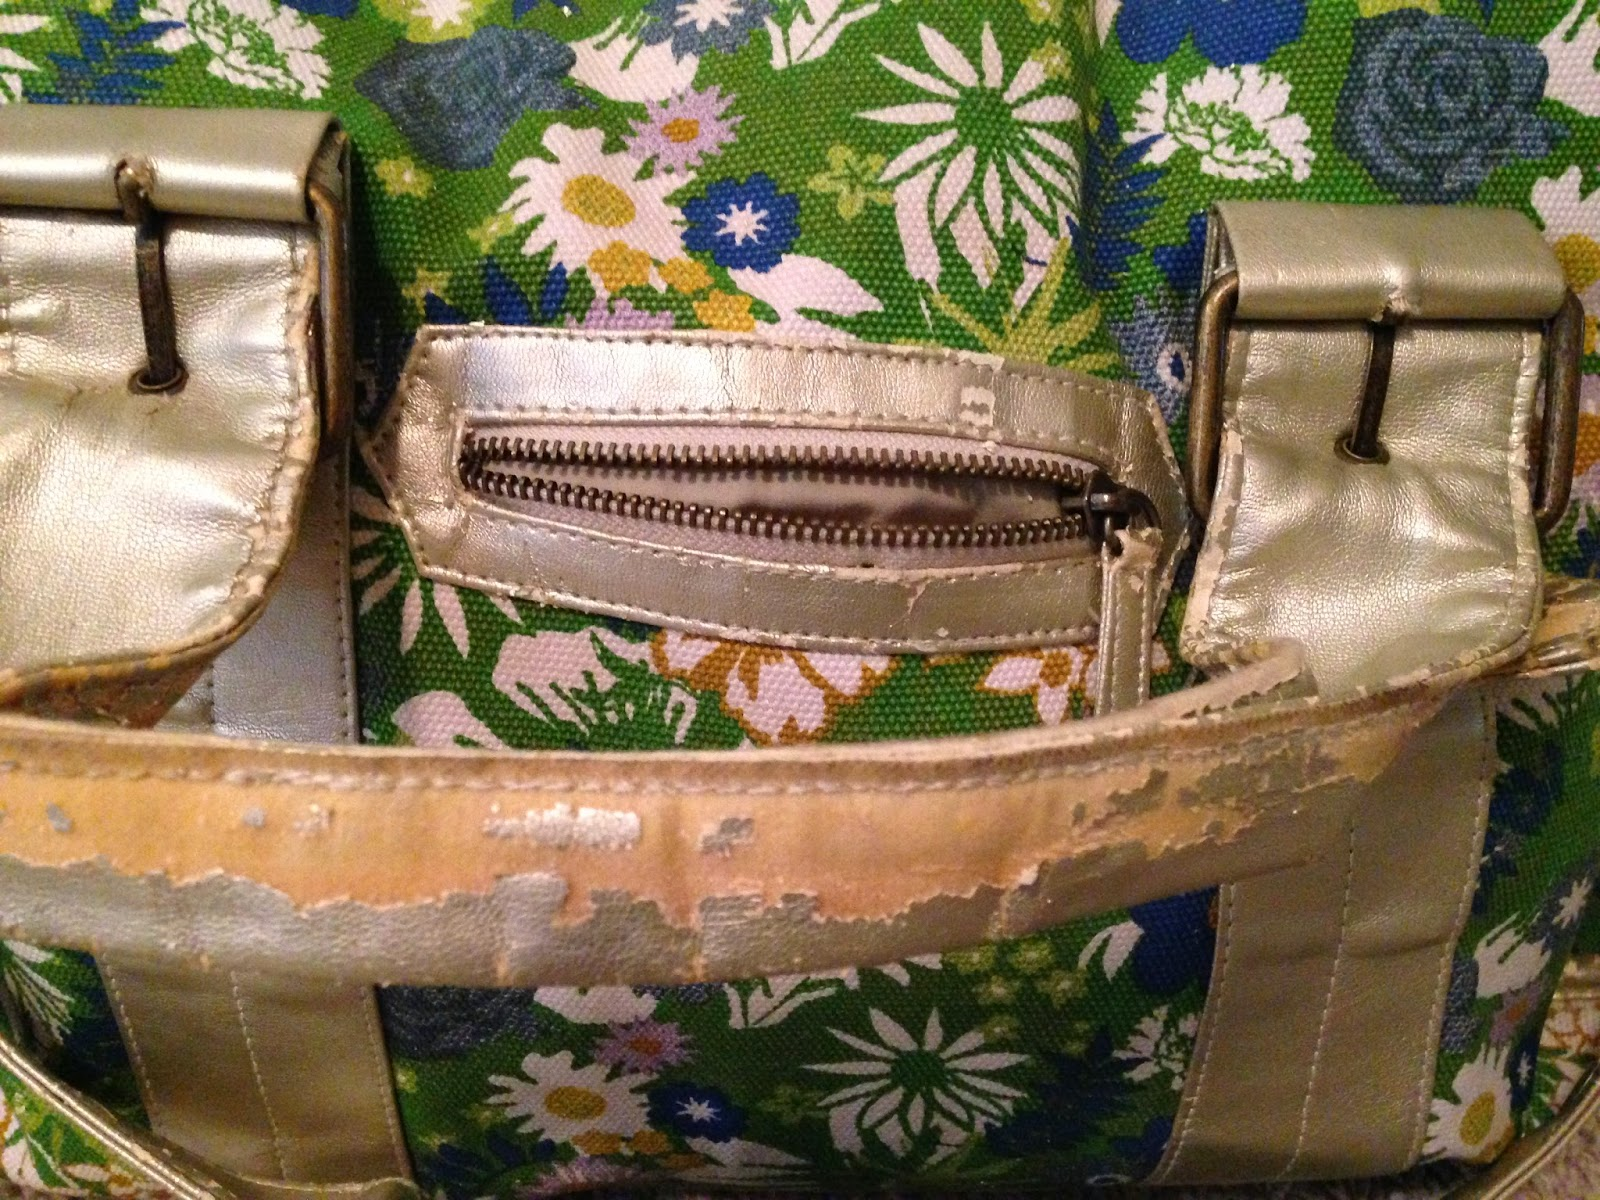 Ulterior Alterations: Weekend Bag Fix problem detail